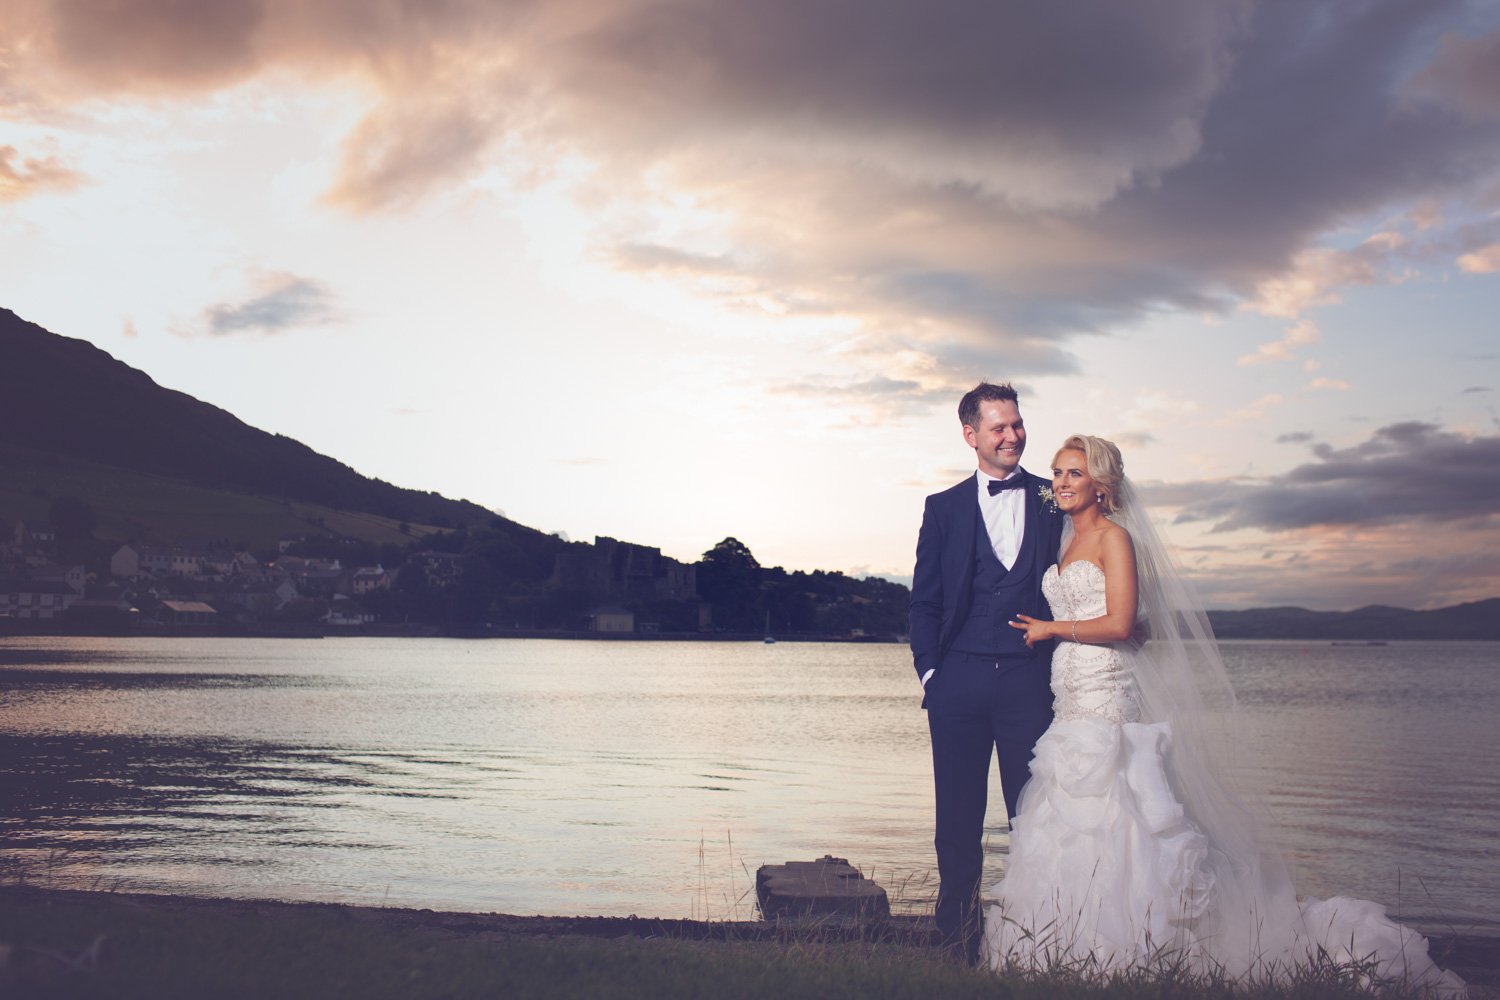 Mark_Barnes_wedding_photographer_Northern_Ireland_Wedding_photography_Carlingford_Four_Seasons_Wedding-51.jpg